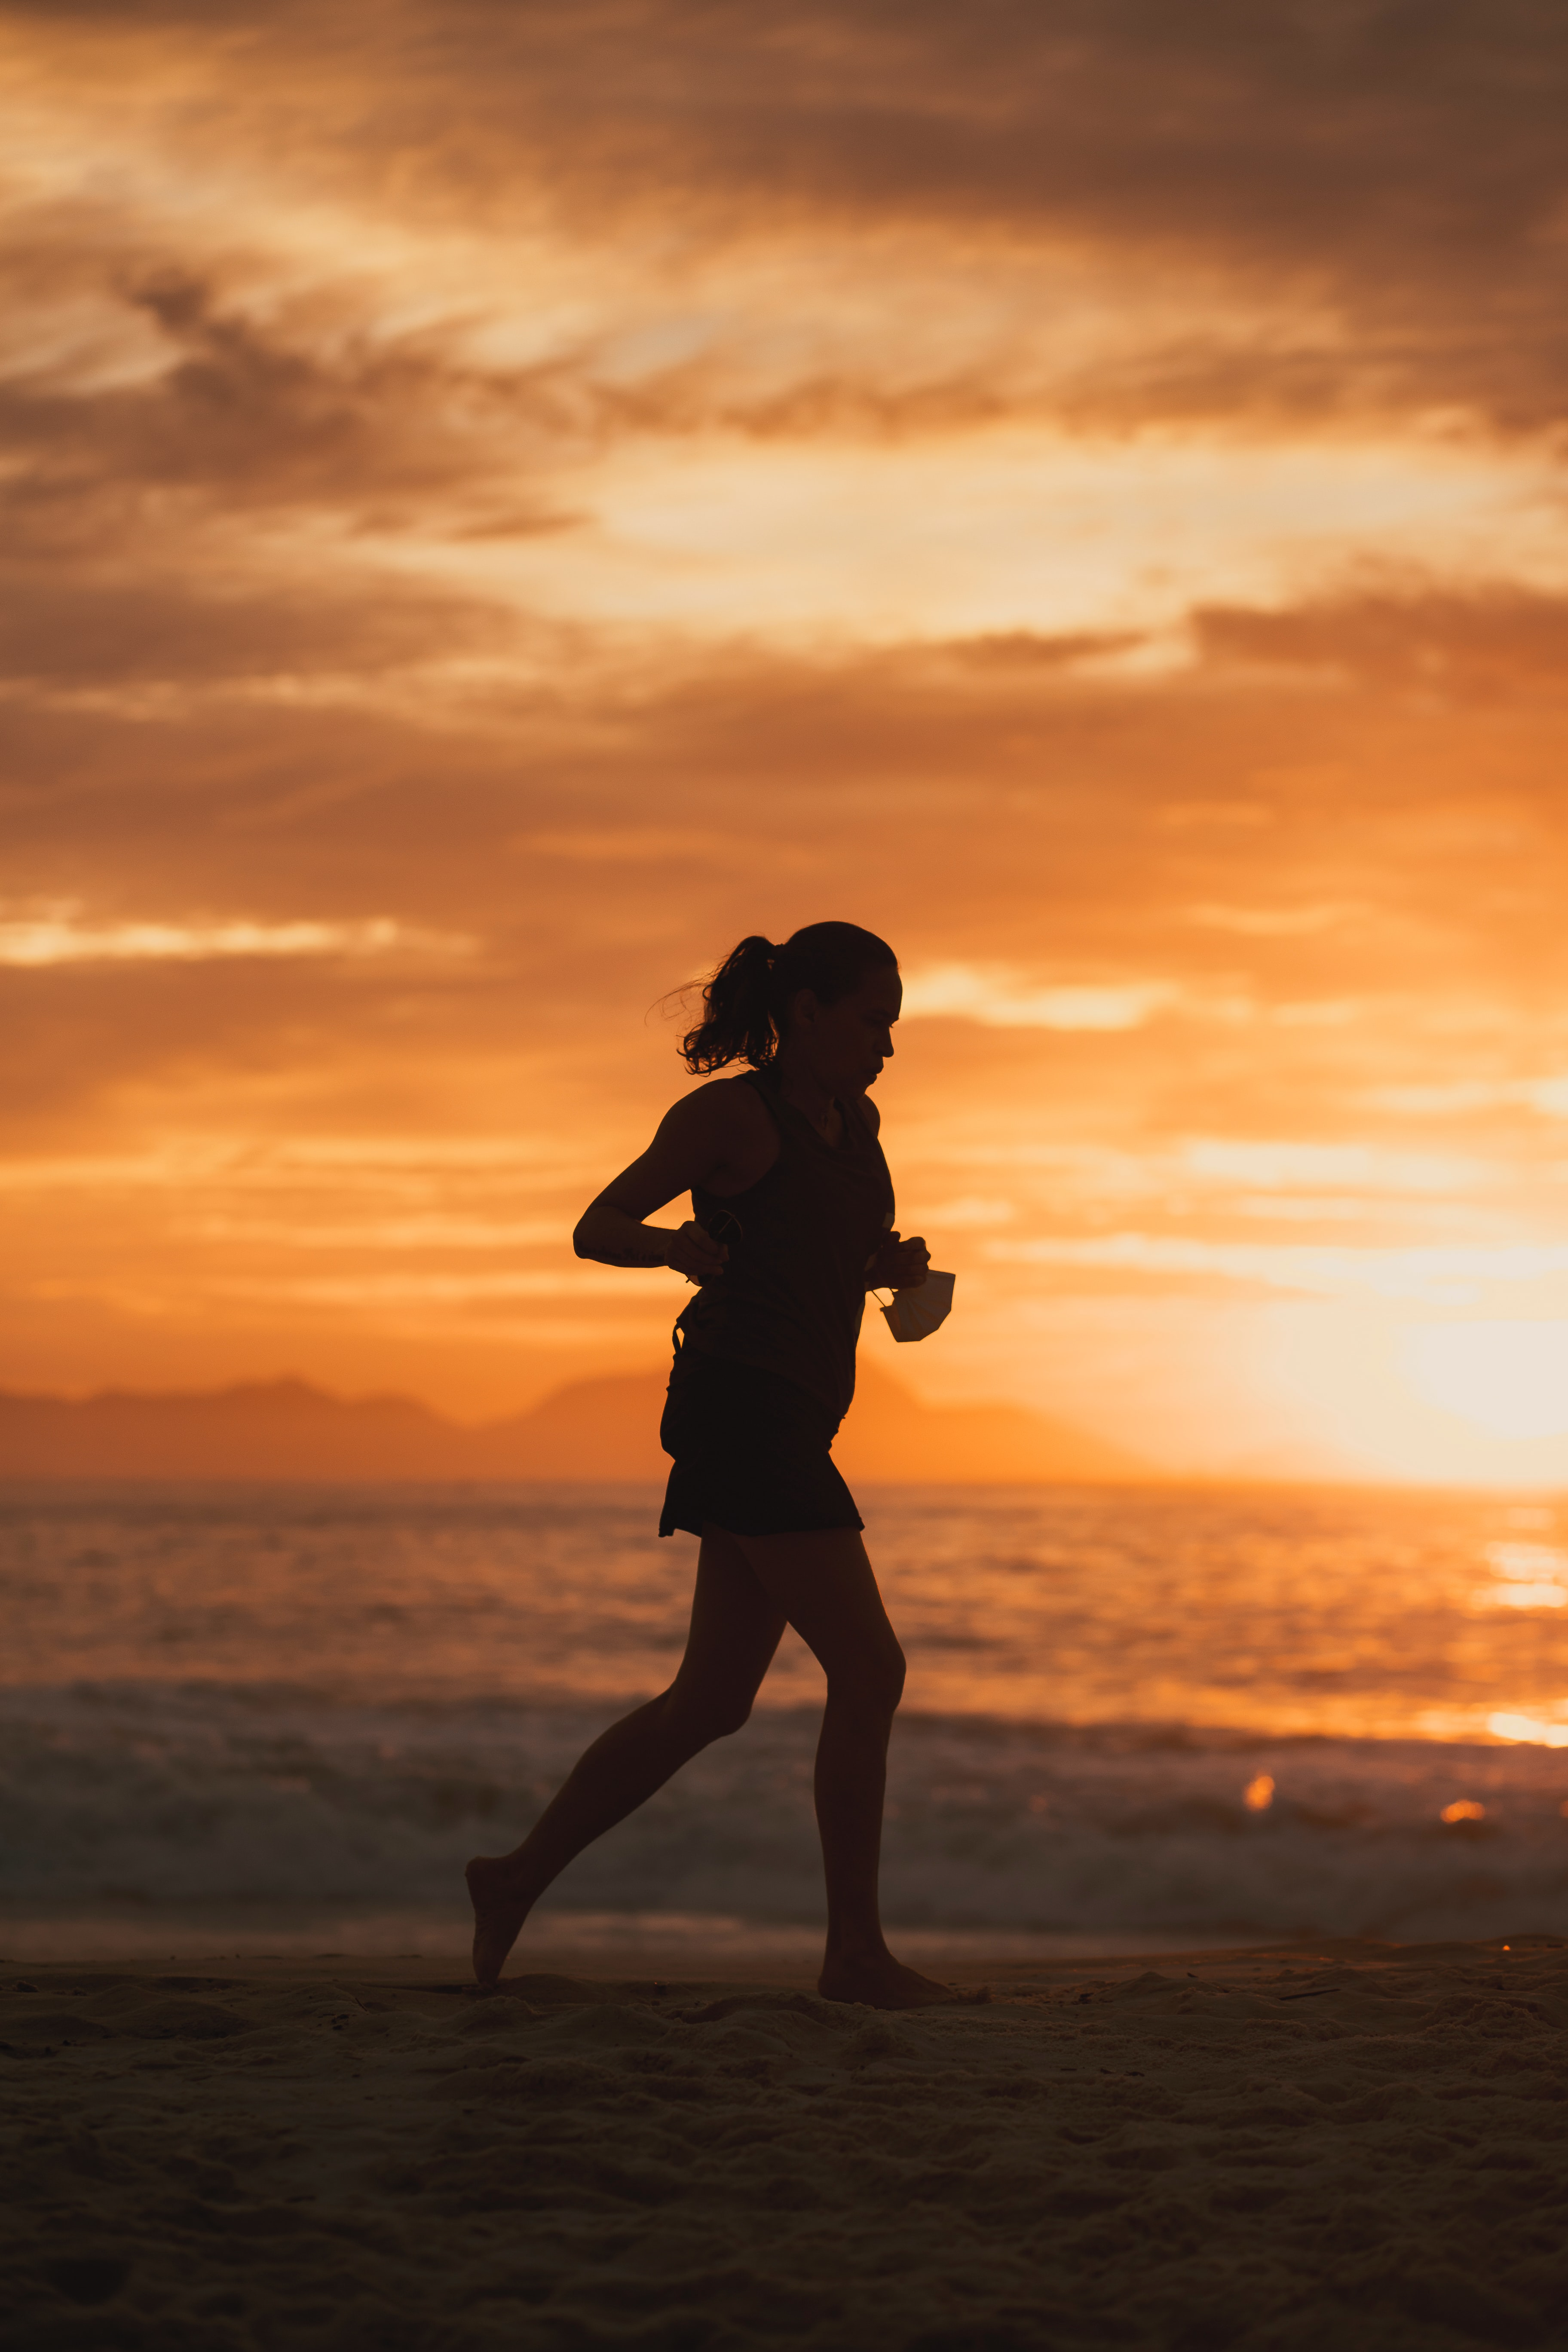 Benefits of running while fasting.